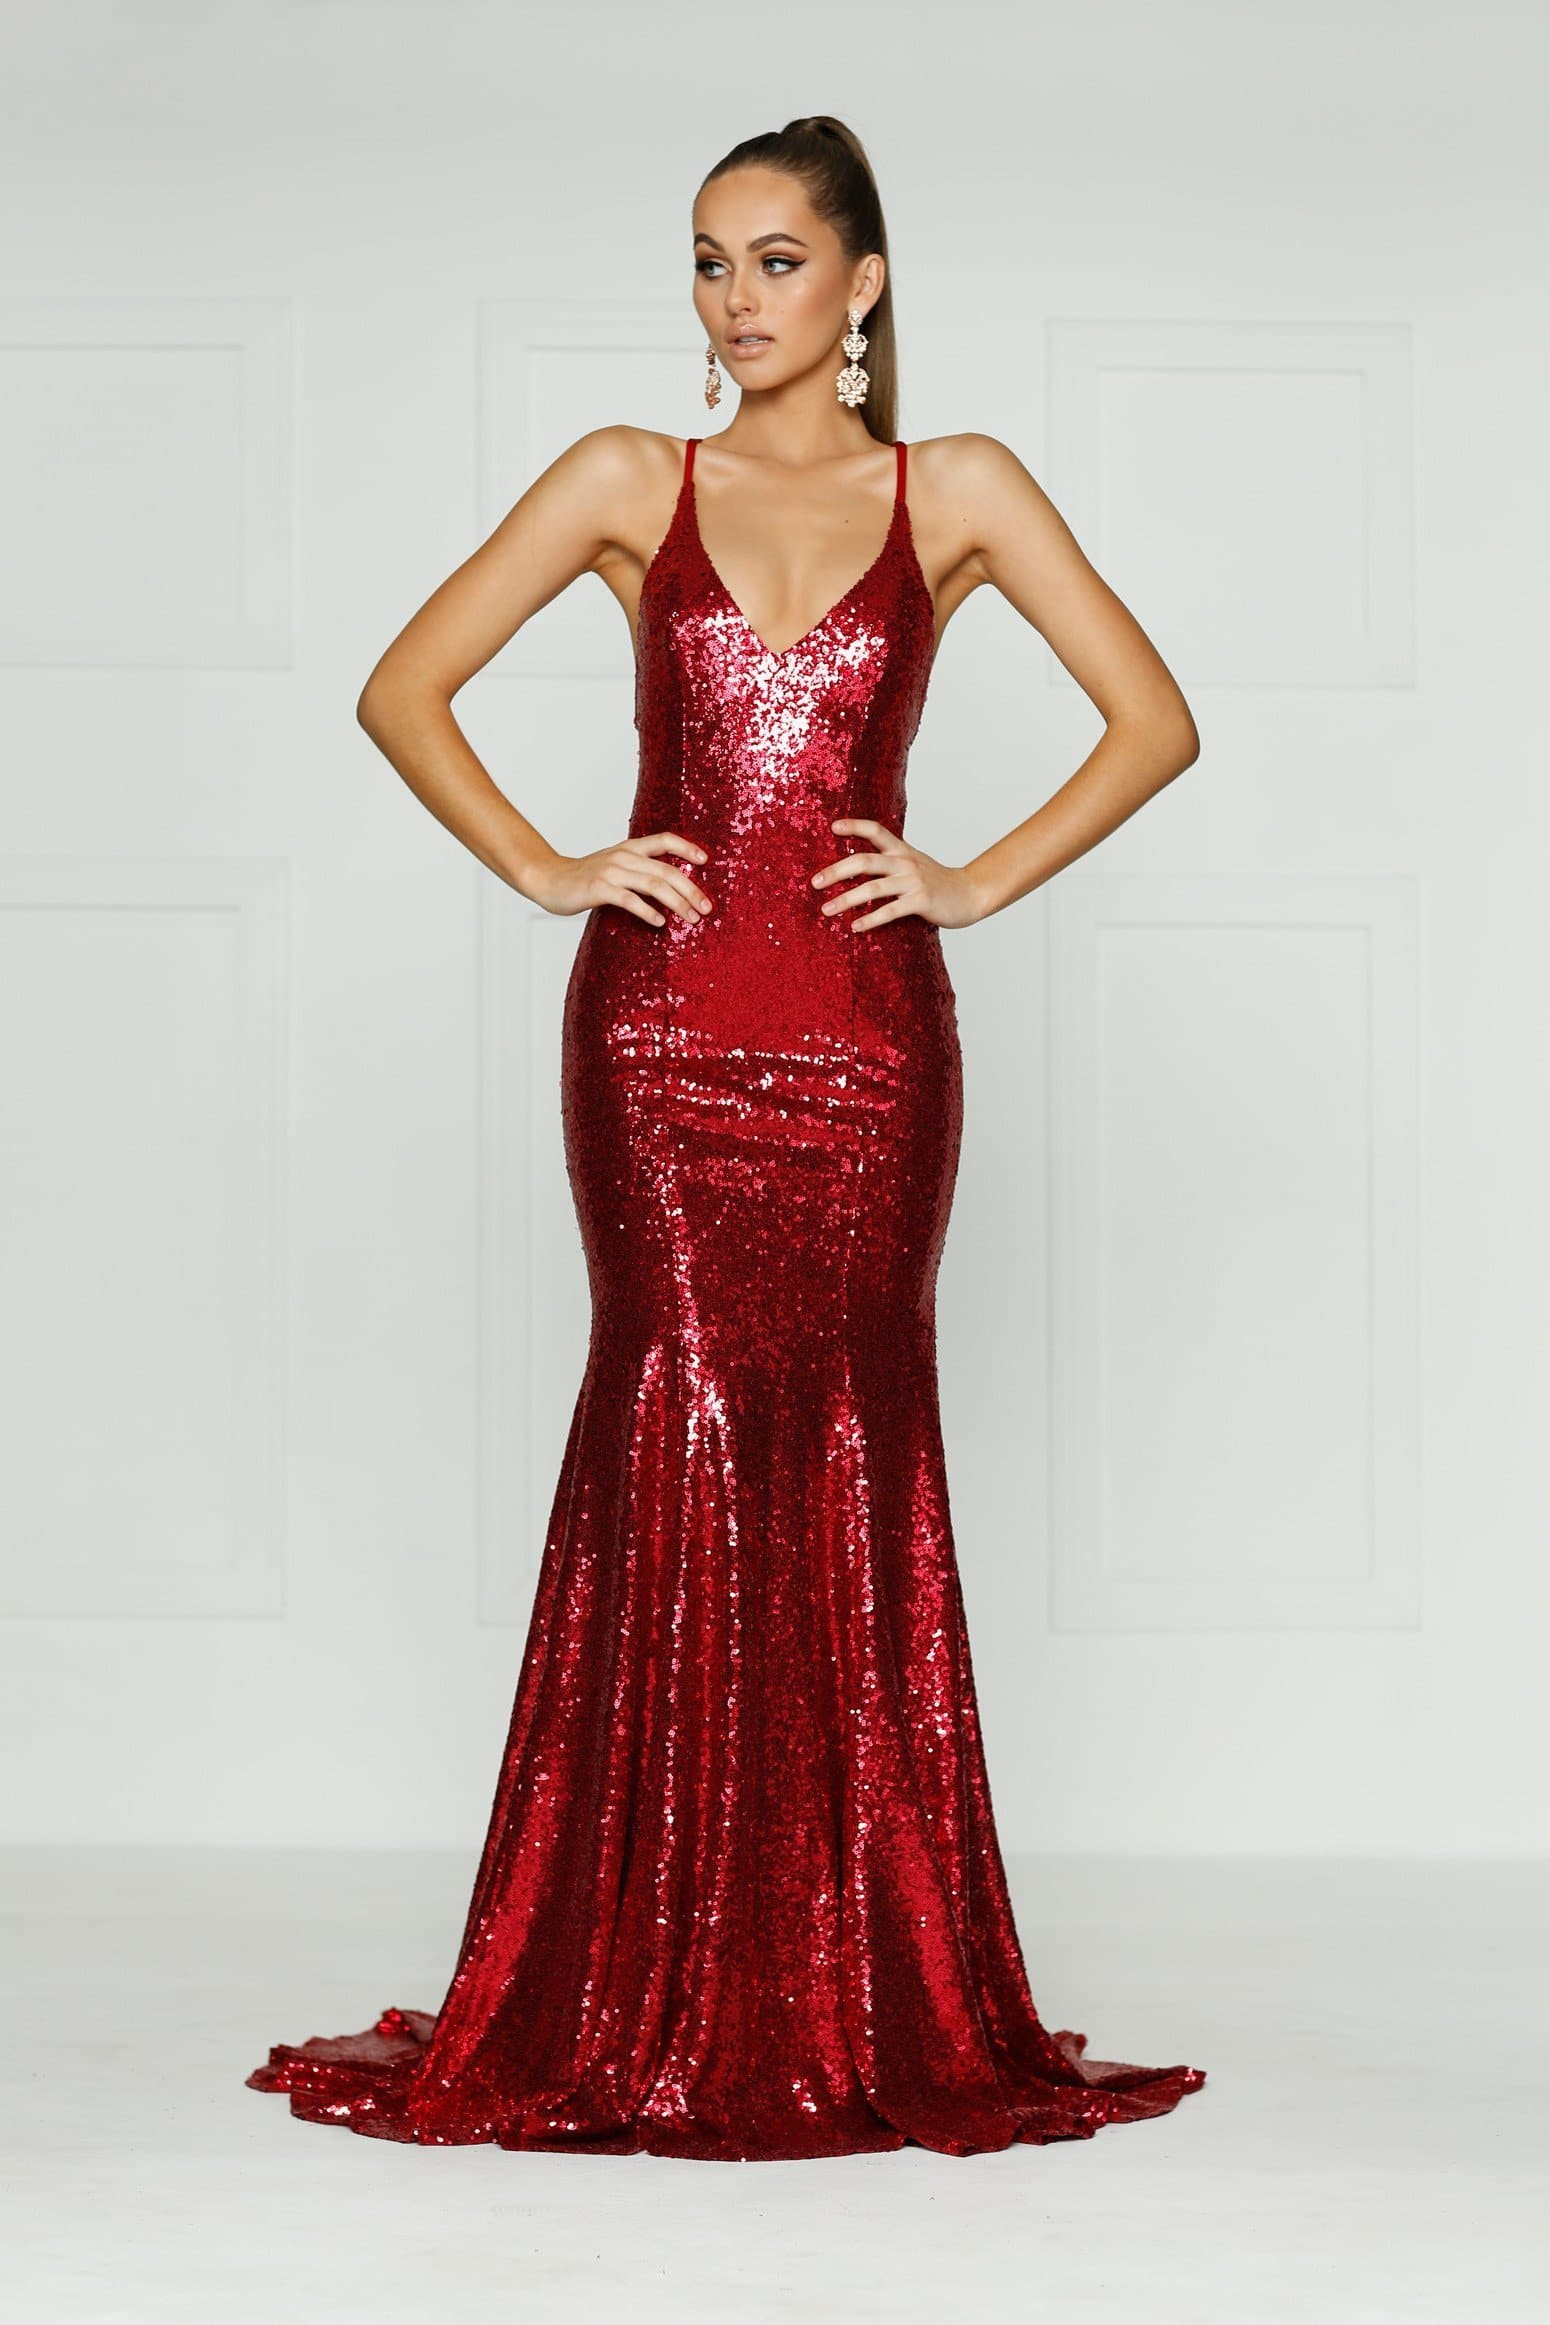 A&N Kendall - Red Sequin Gown with V Neck and Criss Cross Back